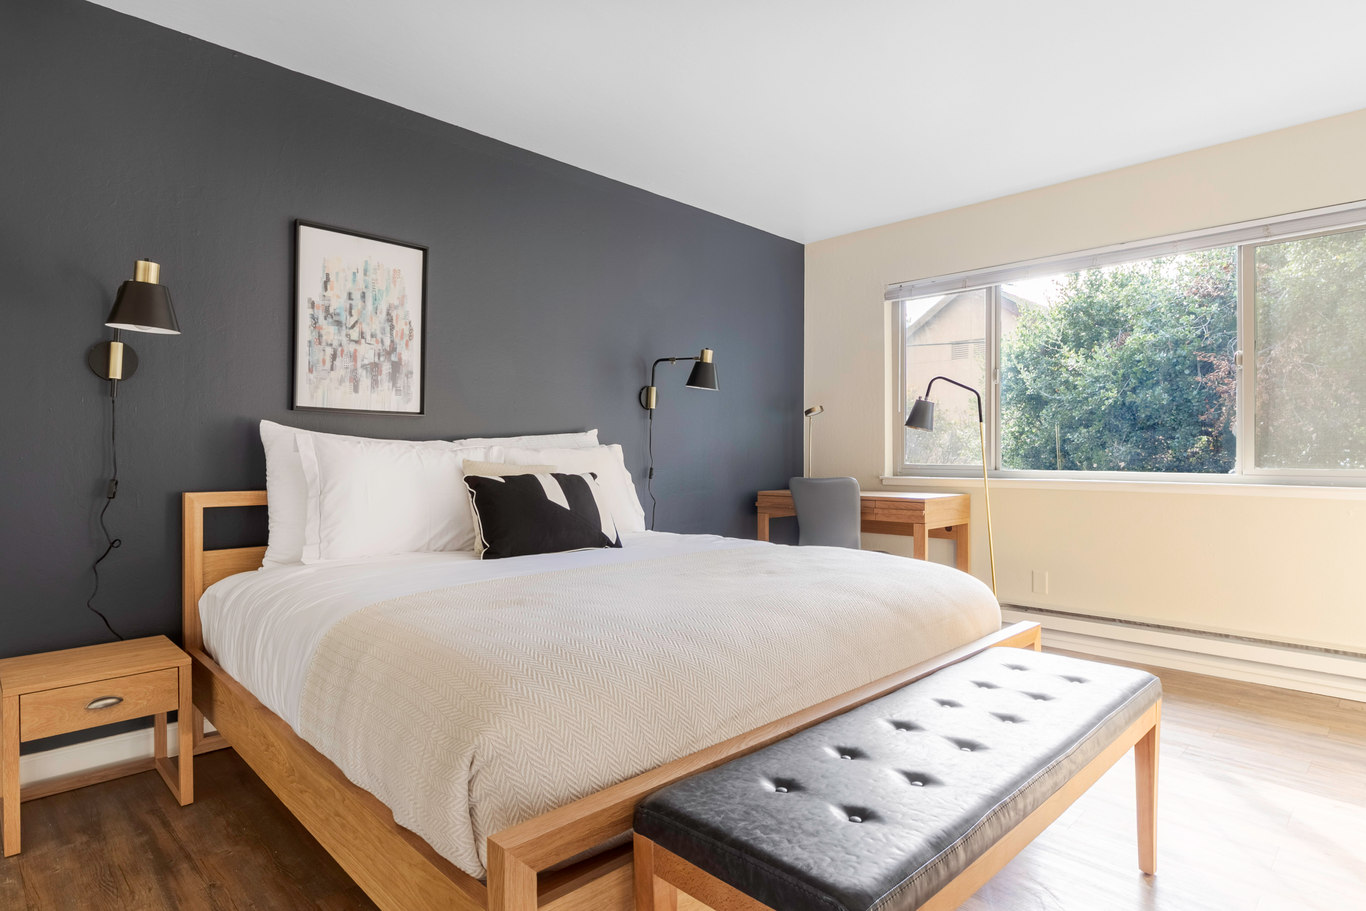 Double Bedroom at Bayside Village Place, Rincon Hill, San Francisco